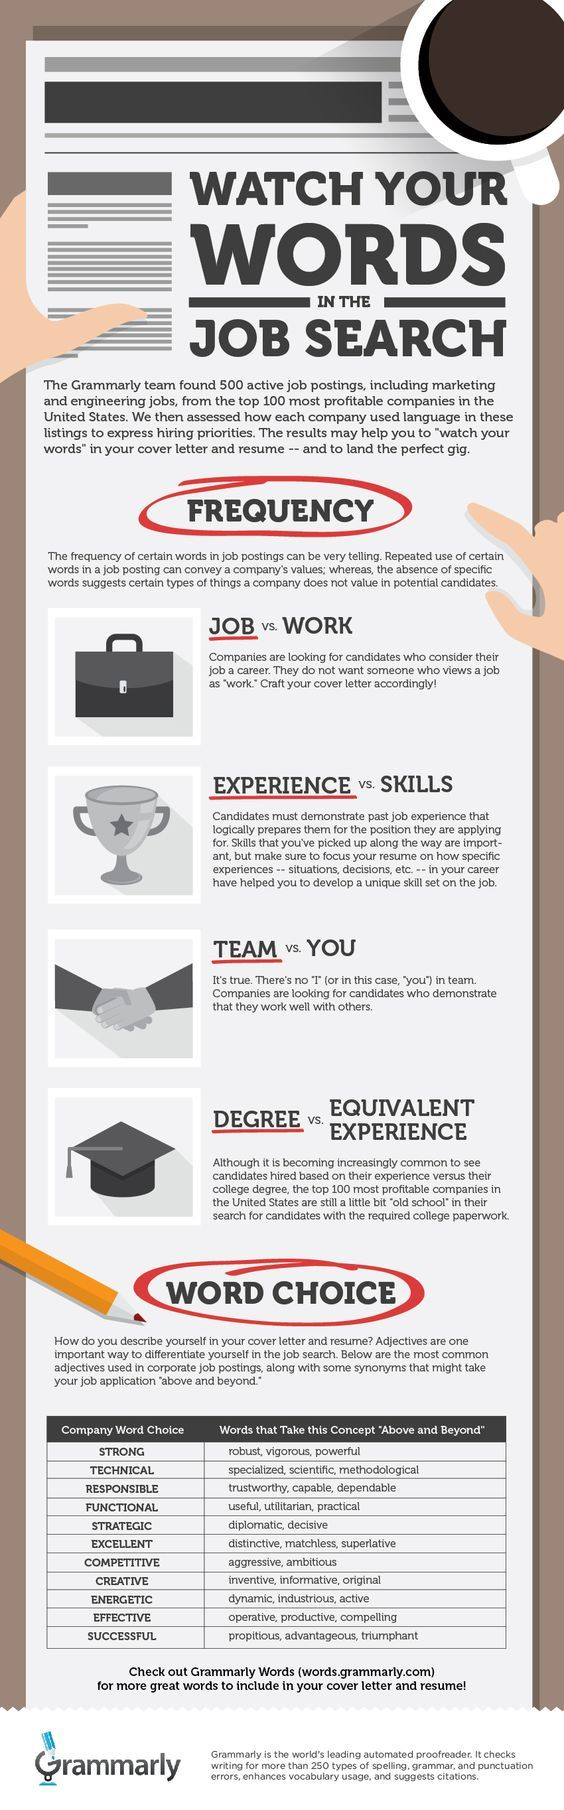 25 unique writing a cover letter ideas on pinterest cover 25 unique writing a cover letter ideas on pinterest cover letter tips cover letters and writing a cv madrichimfo Gallery